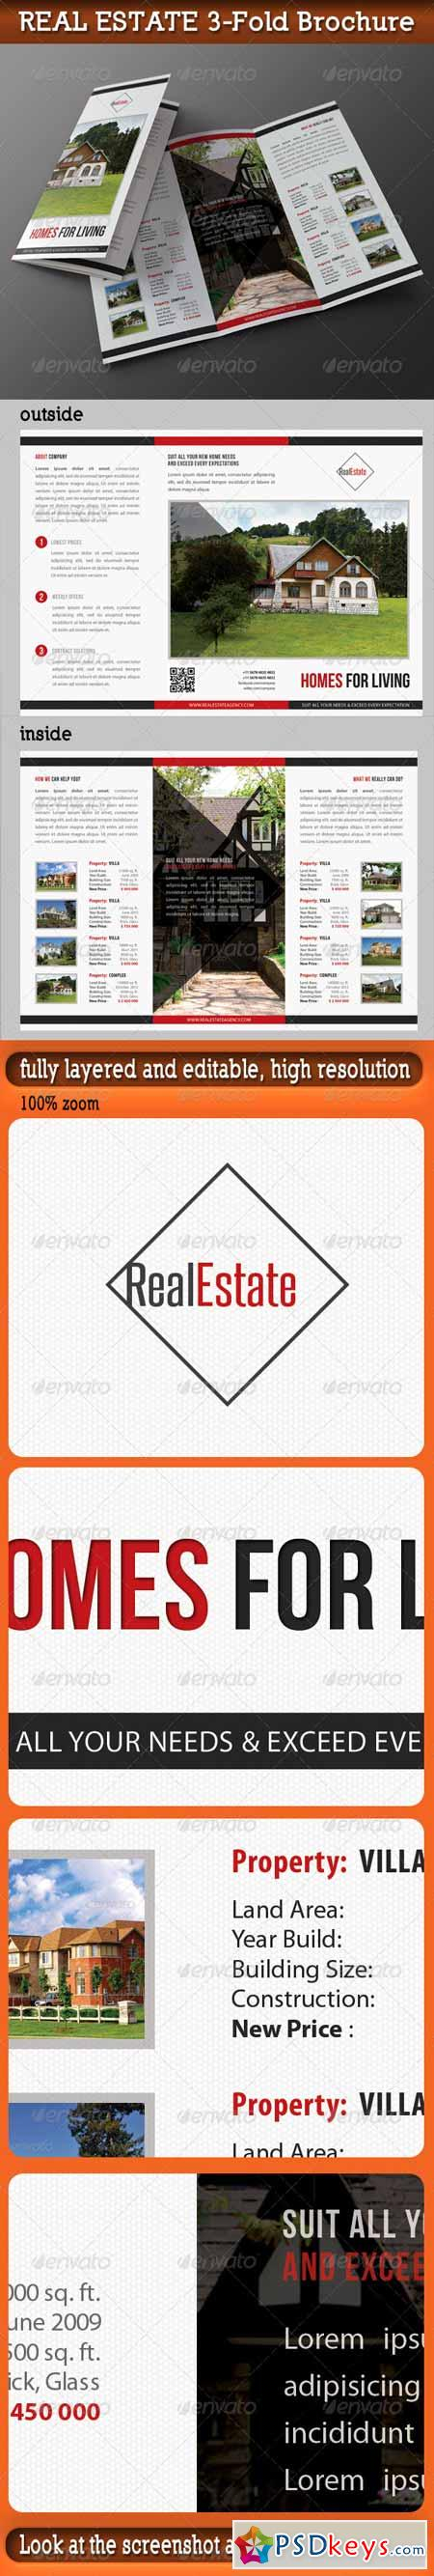 Real Estate 3-Fold Brochure 01 7354154